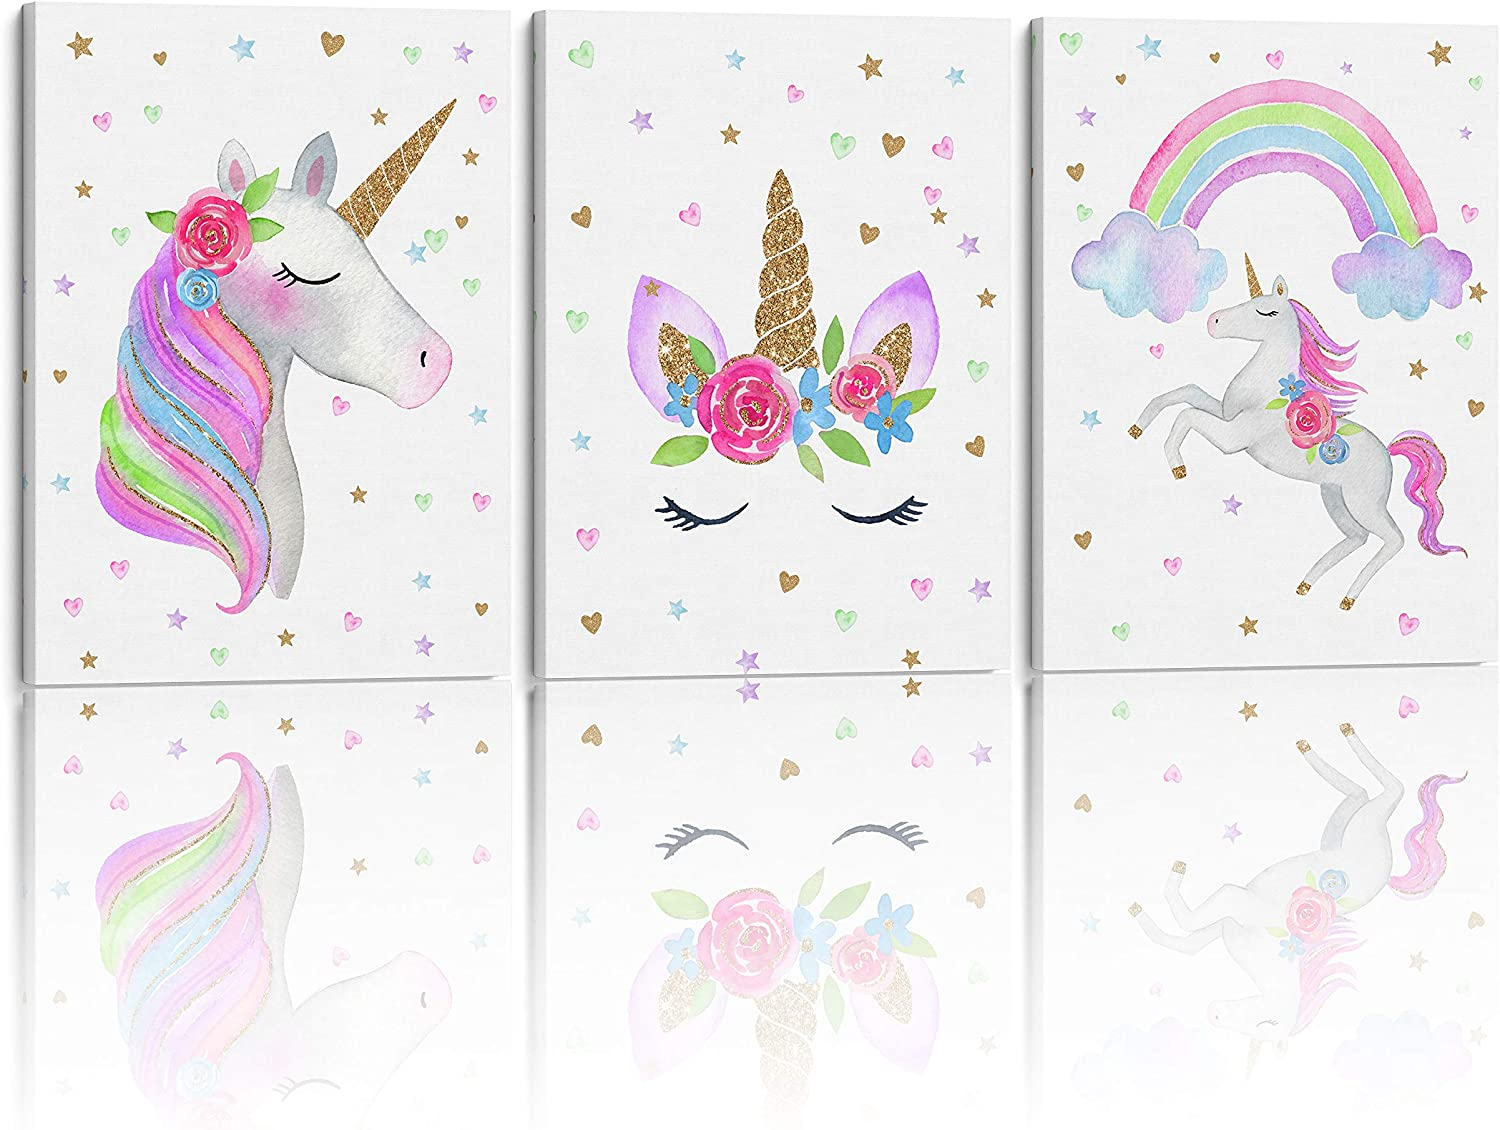 Something Unicorn - Stretched/Framed, Ready to Hang Canvas Wall Art for Girl's Bedroom. Super Cute Water Color Unicorn Prints for Nursery or Girls Bedroom Decor. Set of 3. 12x16in - Unicorn